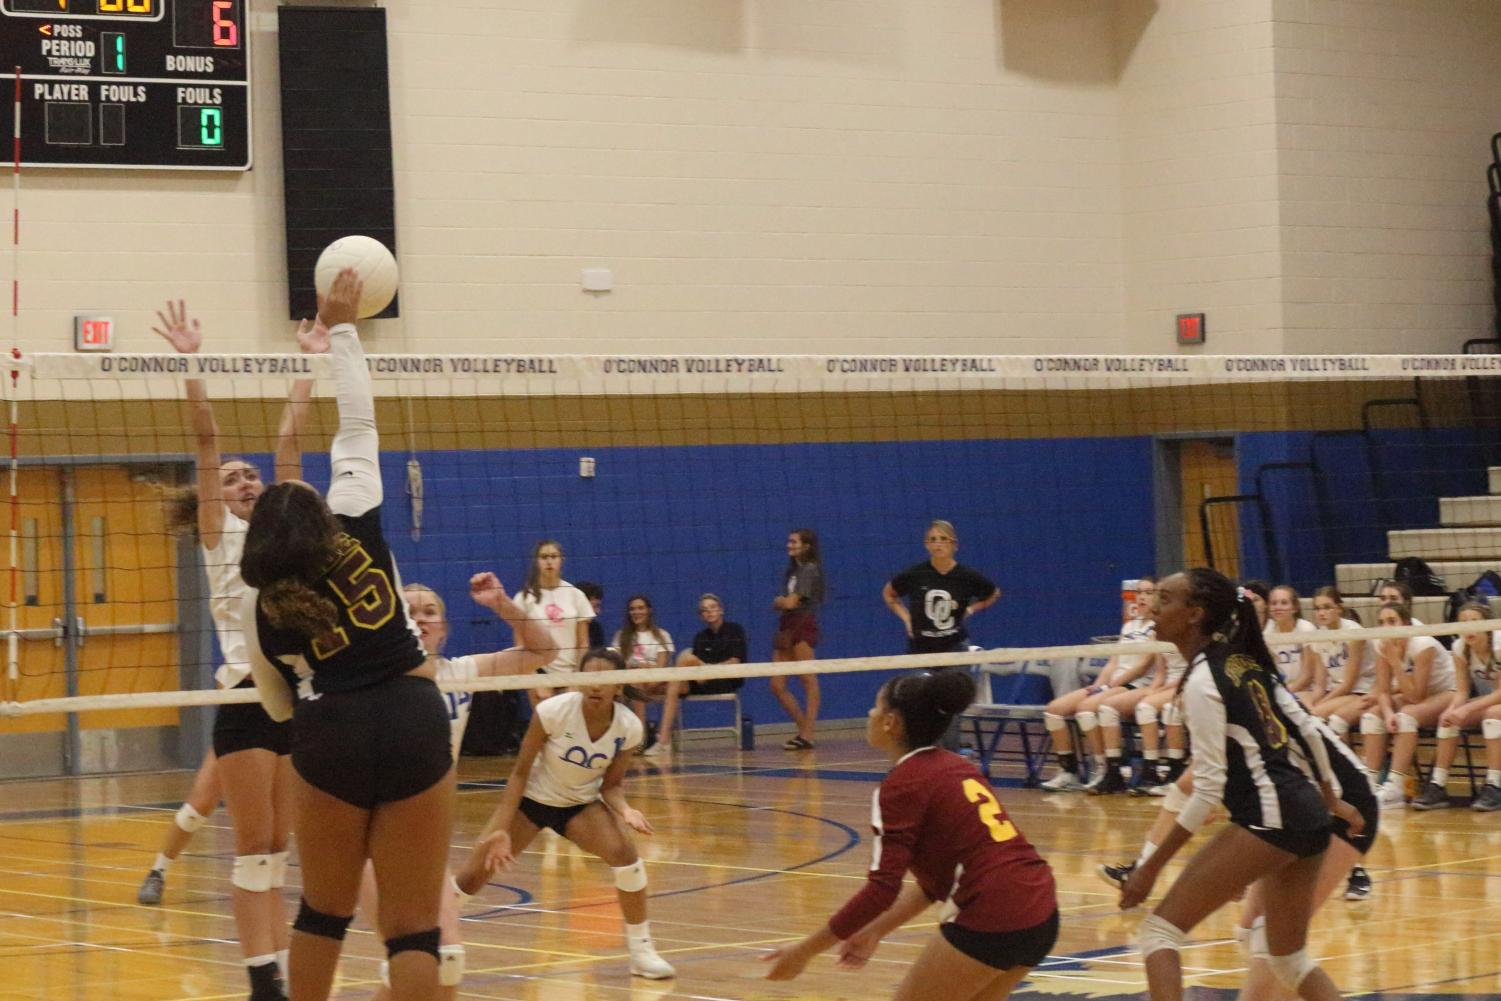 The JV team goes up for a block against Chaparral on Oct. 2. OHS won 2-0